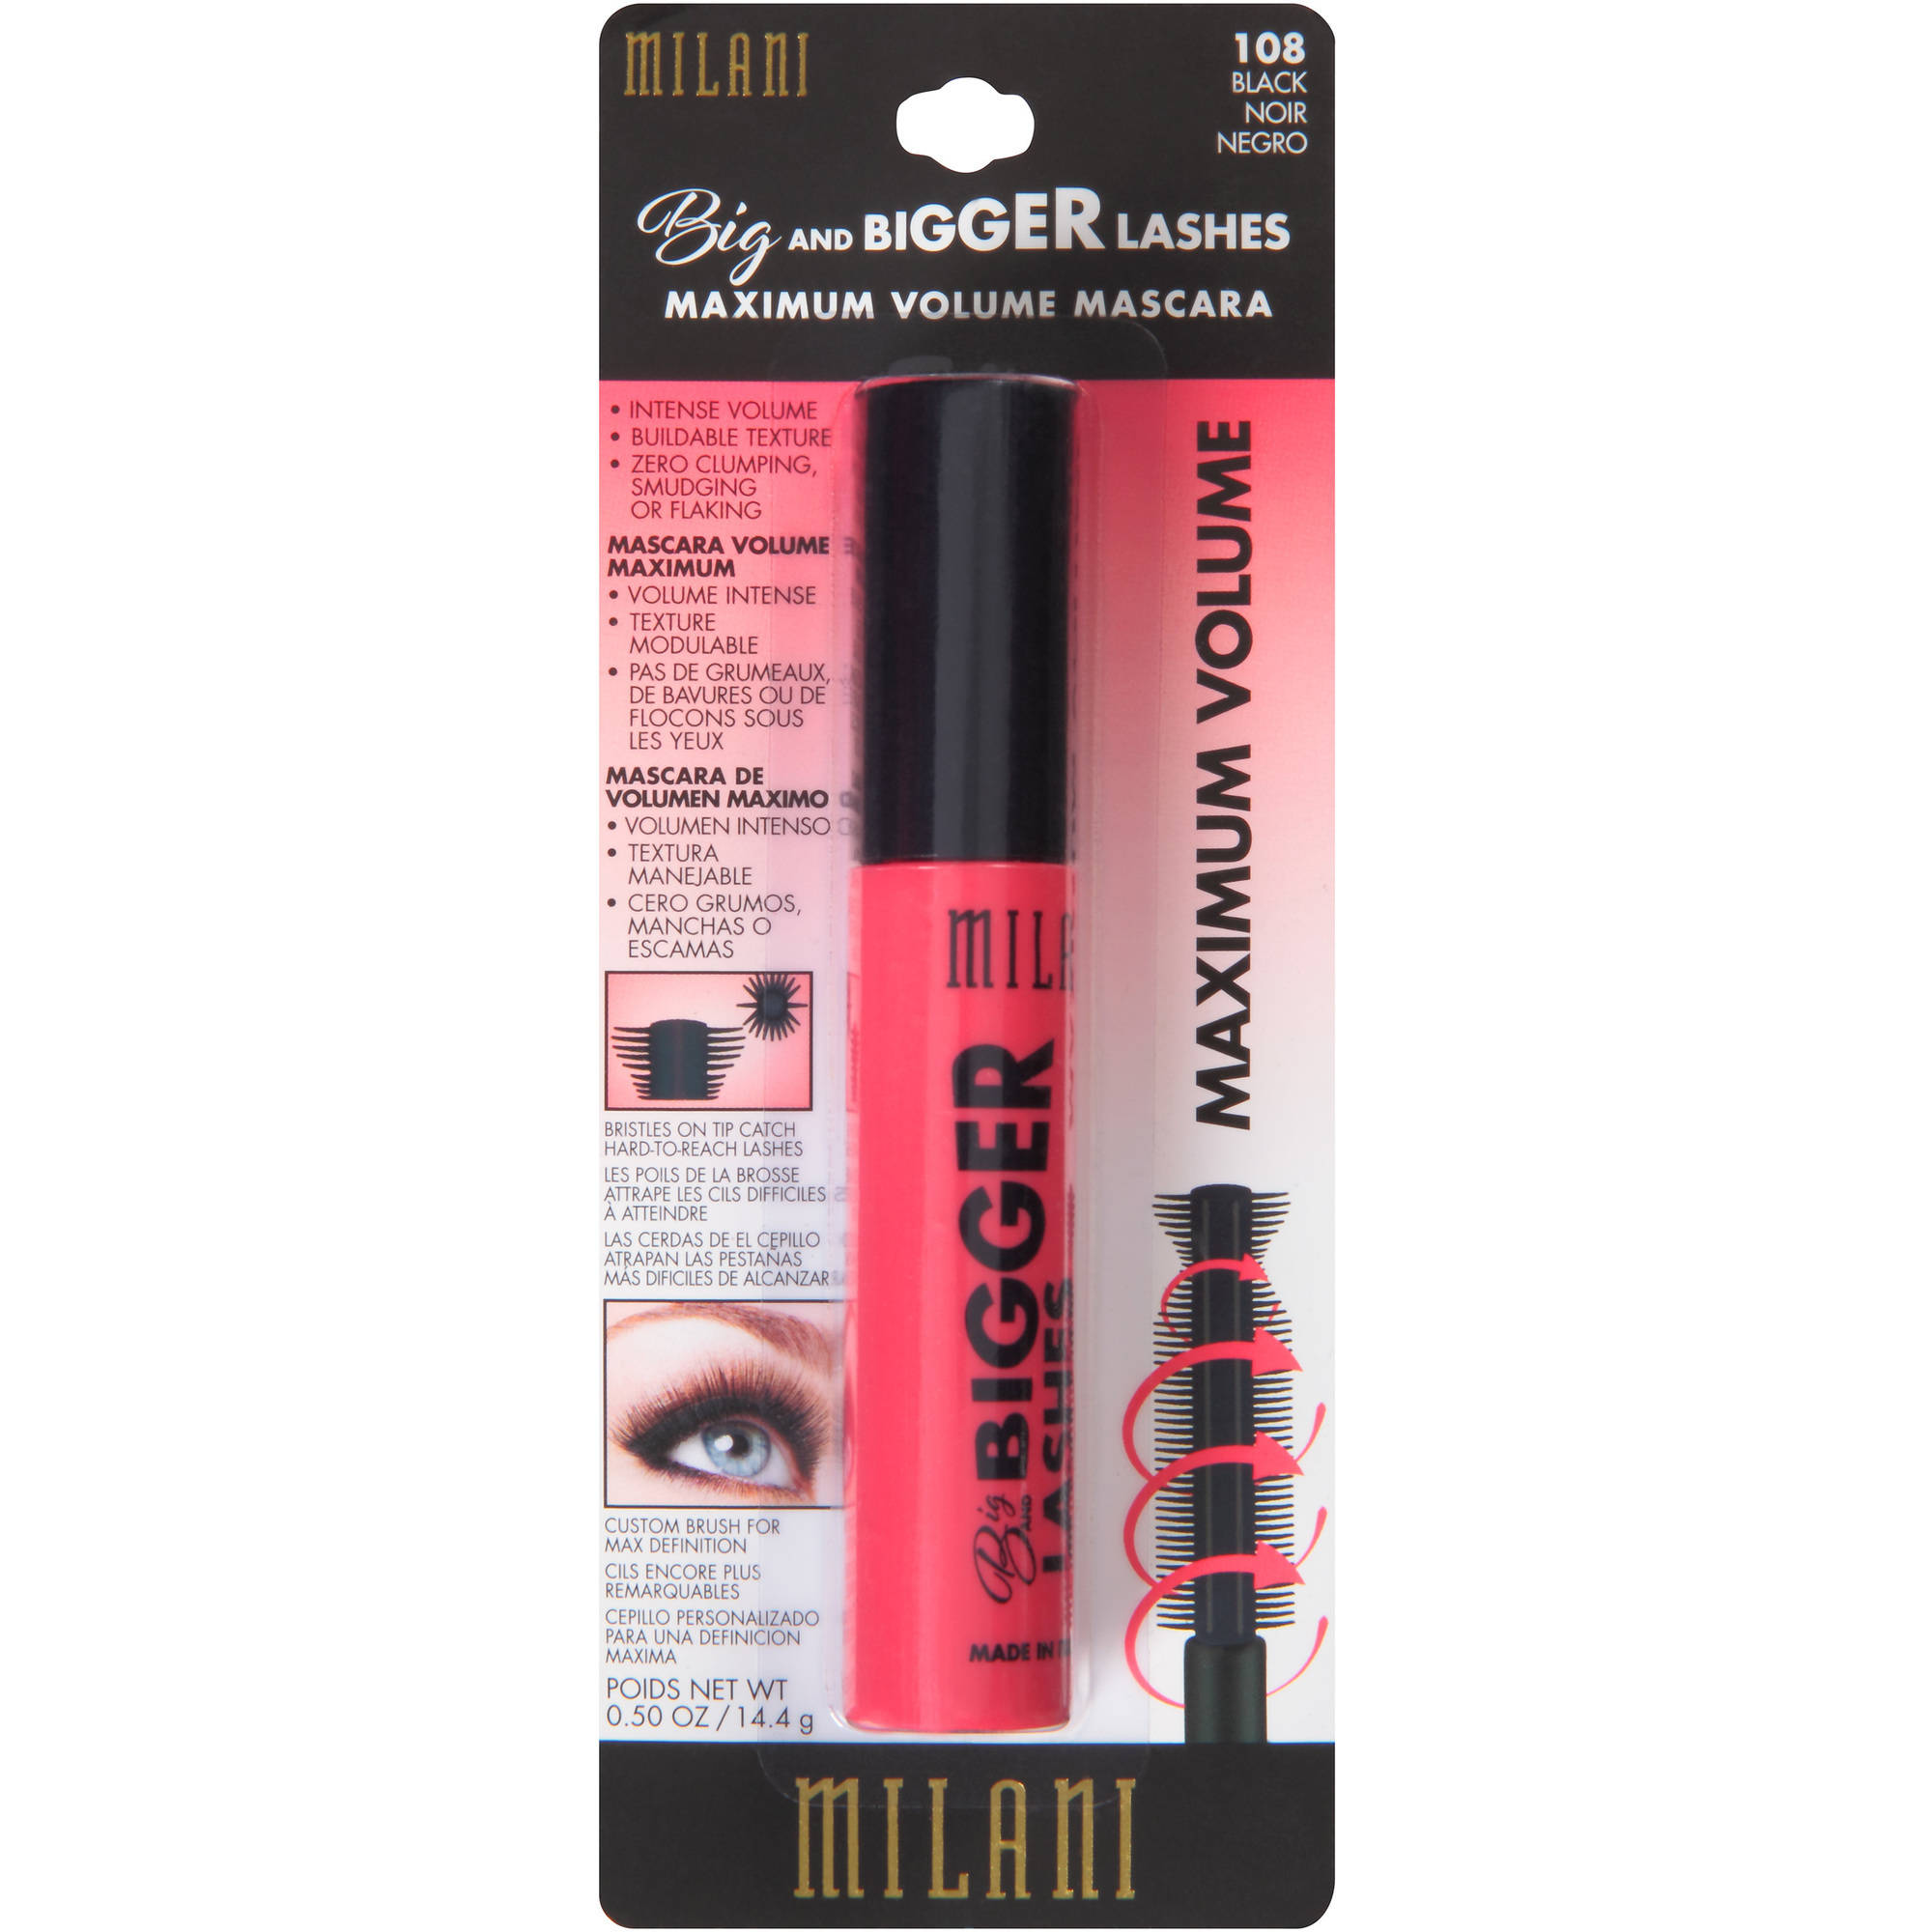 Milani Big and Bigger Lashes Maximum Volume Mascara, 108 Black, 0.50 oz